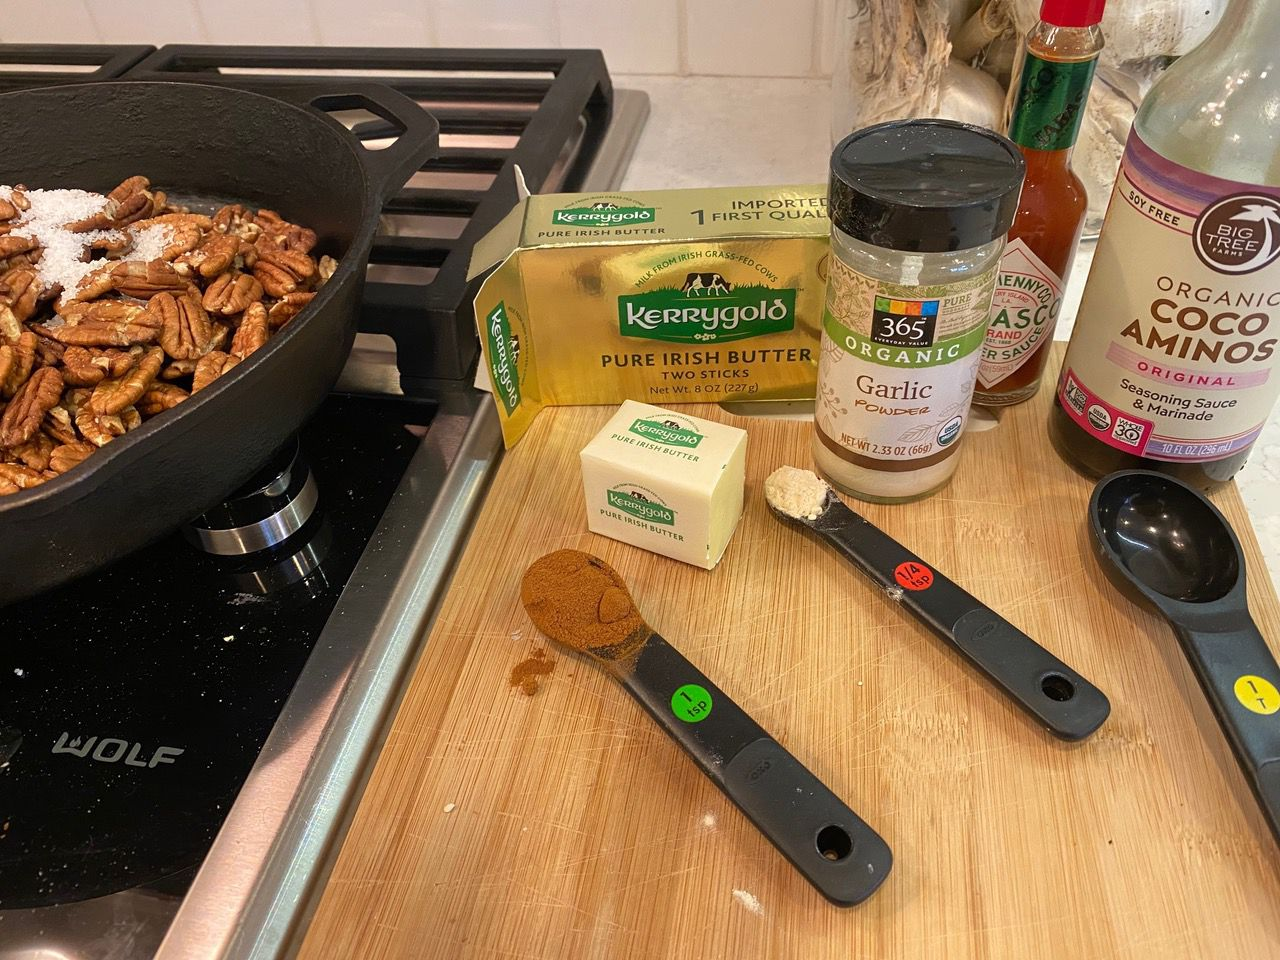 This pecan recipe seems to make the nuts easier to digest, as well as tasty.